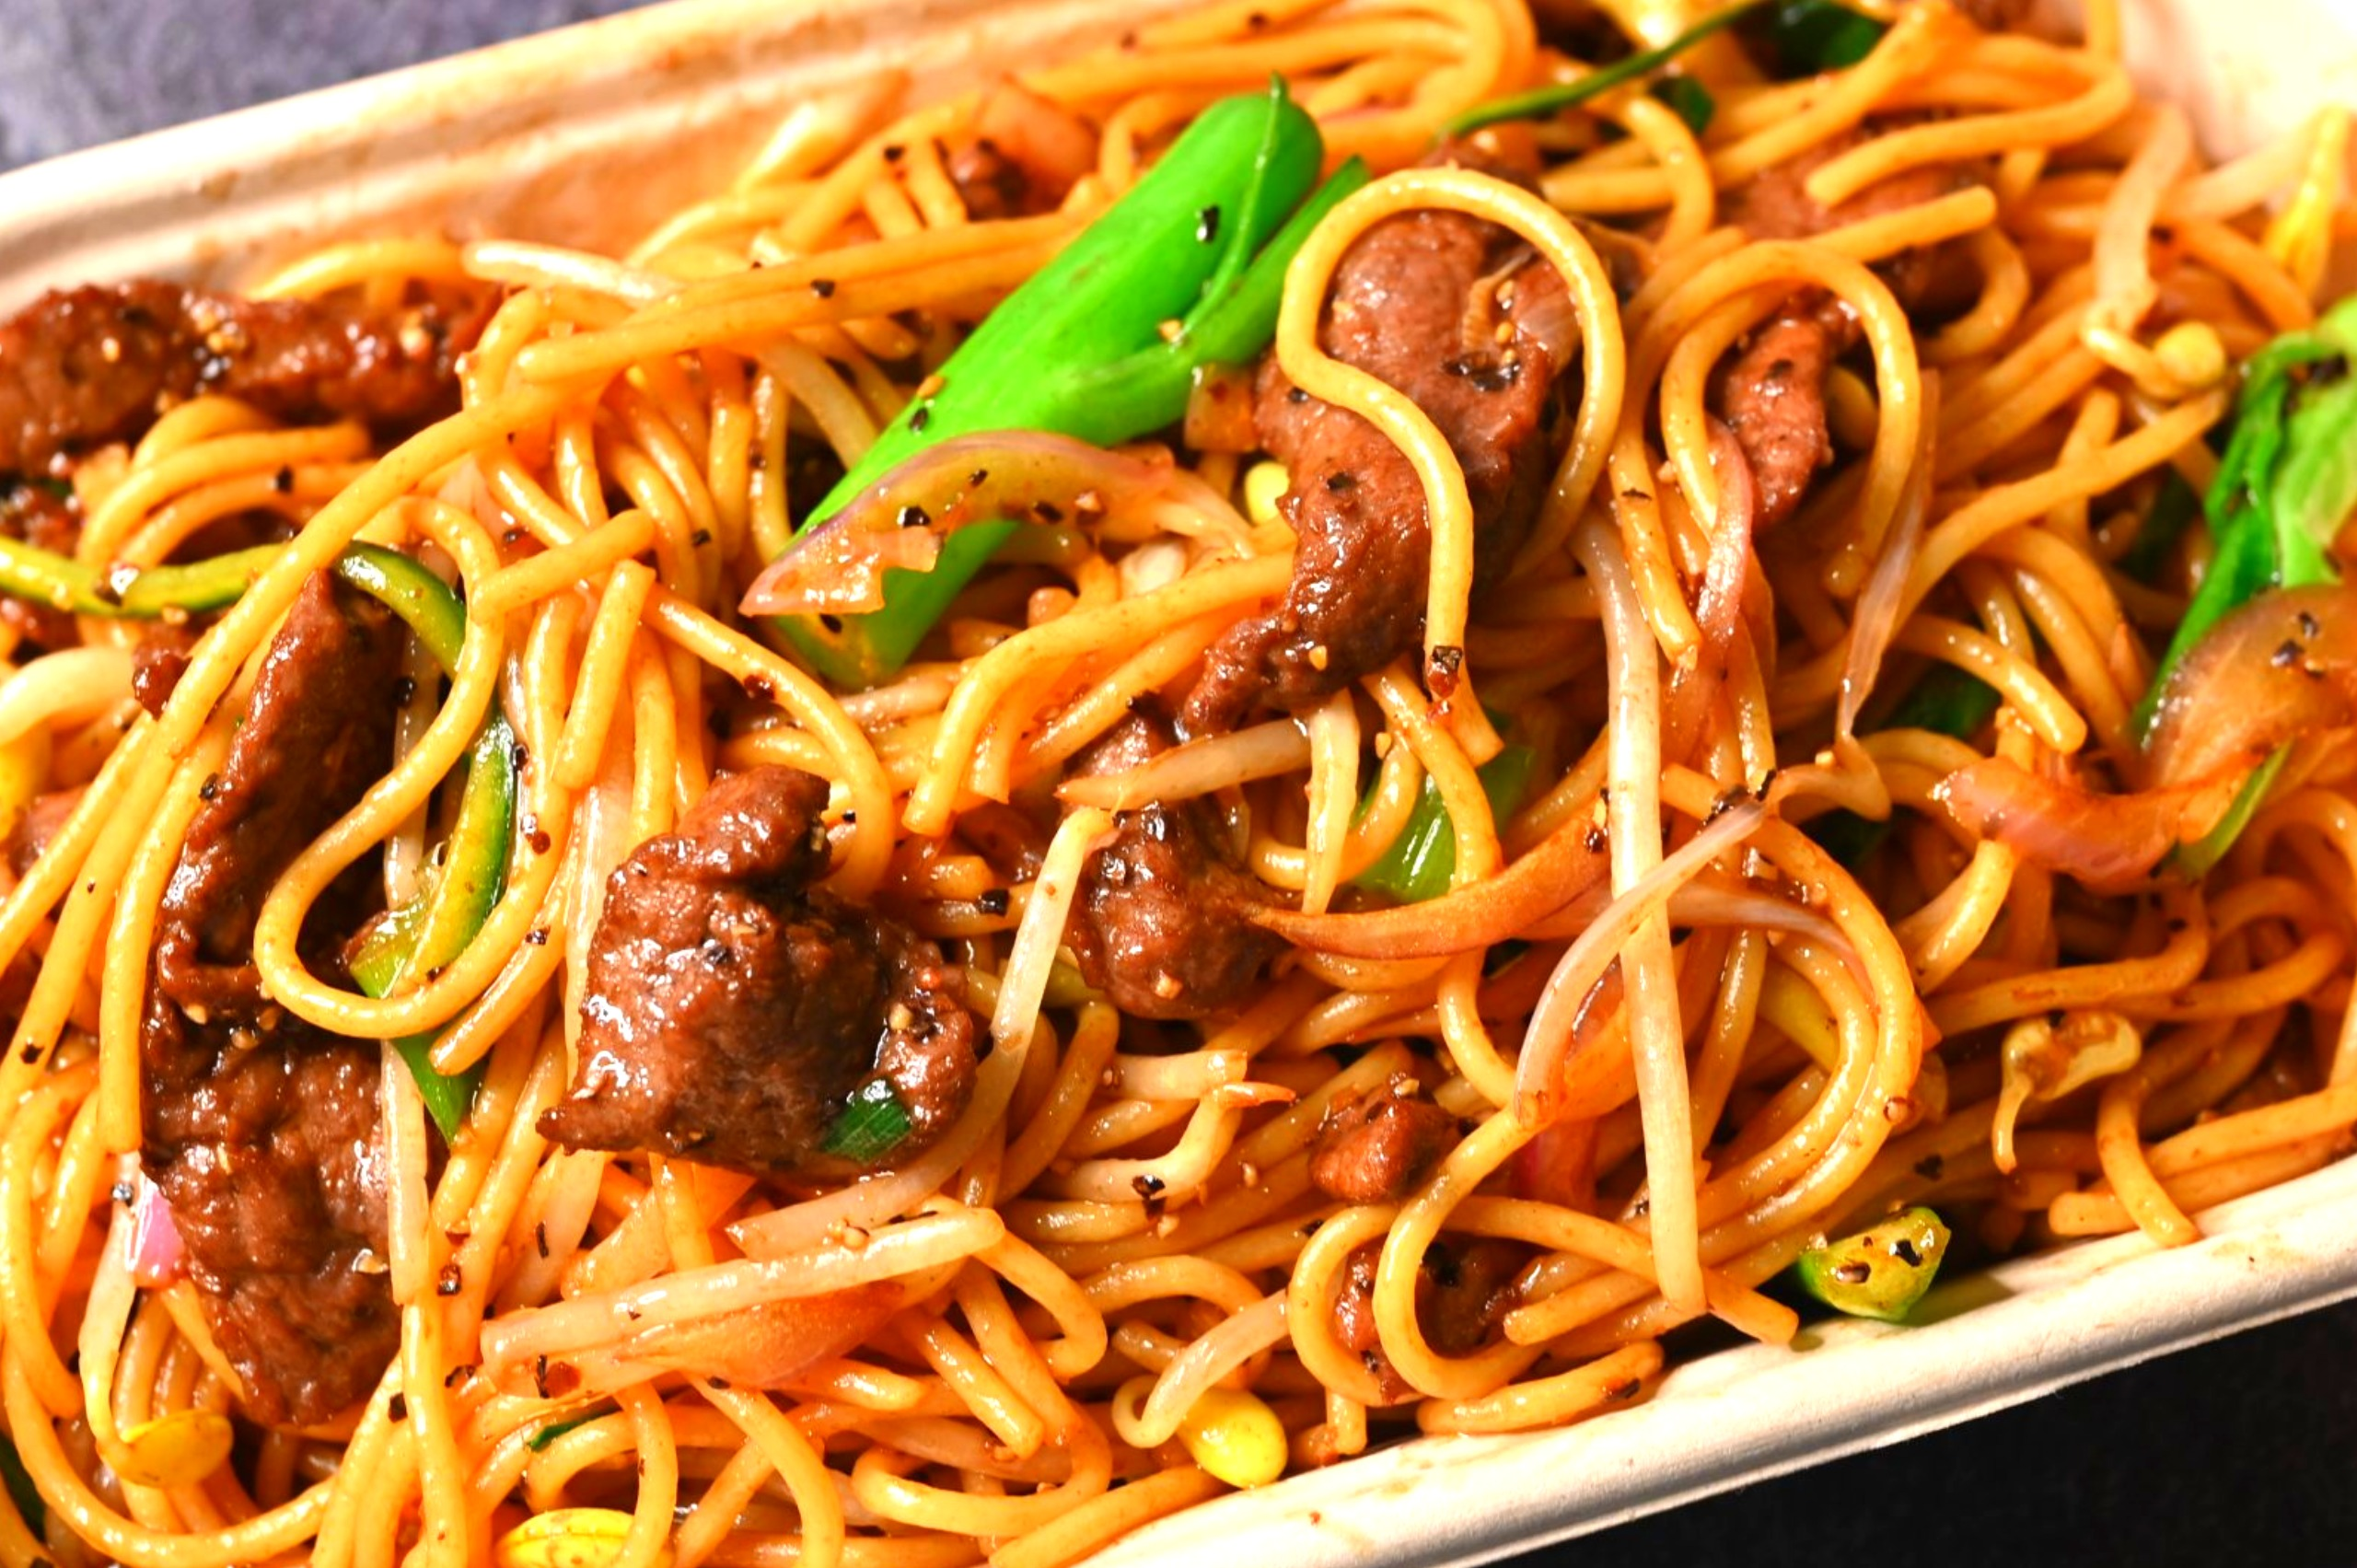 Never Get The Lo Mein At A Chinese Restaurant - Here's Why